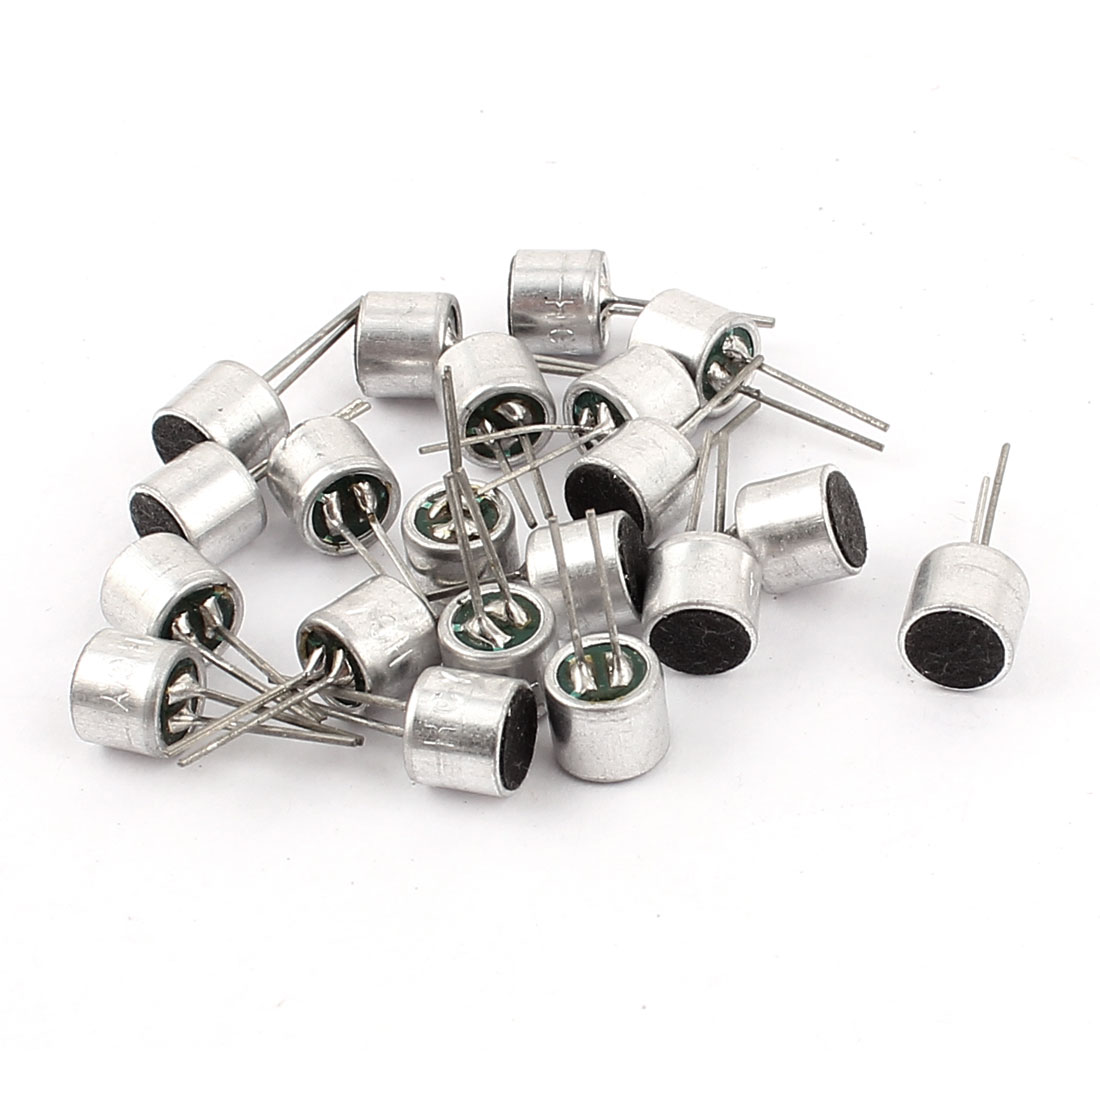 20 Pcs 6mm x 5mm Through Hole Mini Electret Microphone Condenser Pickup